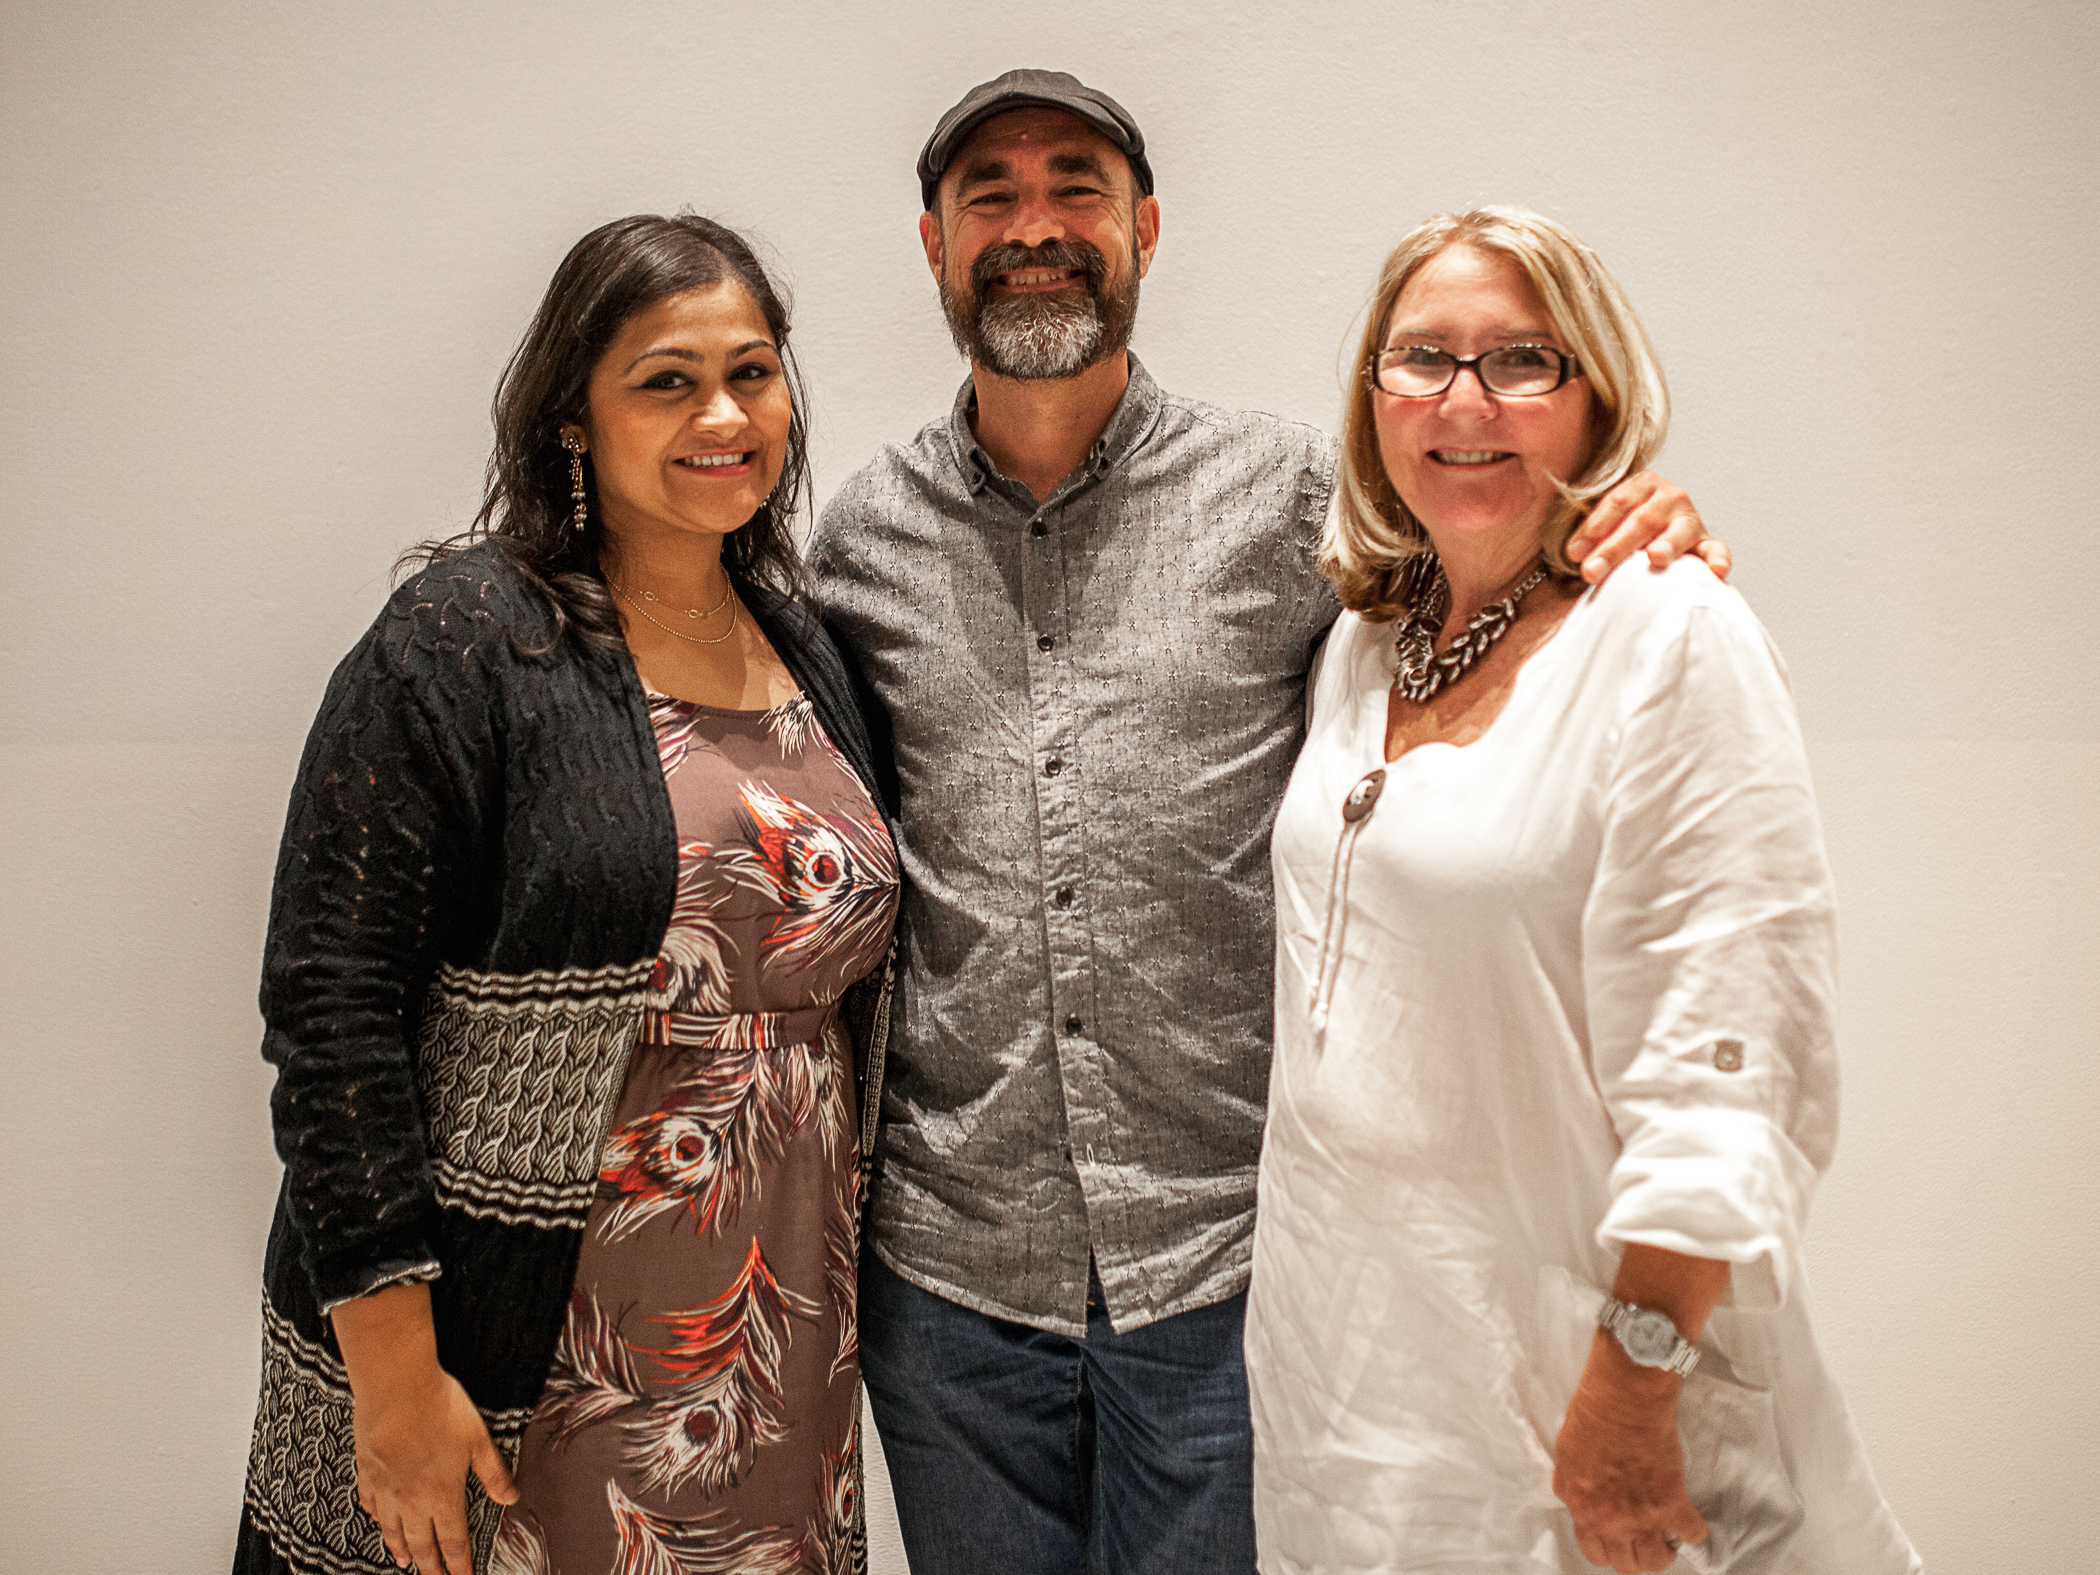 From left to right: Mansi Chokshi, SCAA Director of Membership; Martin Diedrich, Kean Coffee; Karen Cebreros, Women of Coffee Micro-finance Fund and Co-founder of the IWCA. Photo by  Julie Rings .